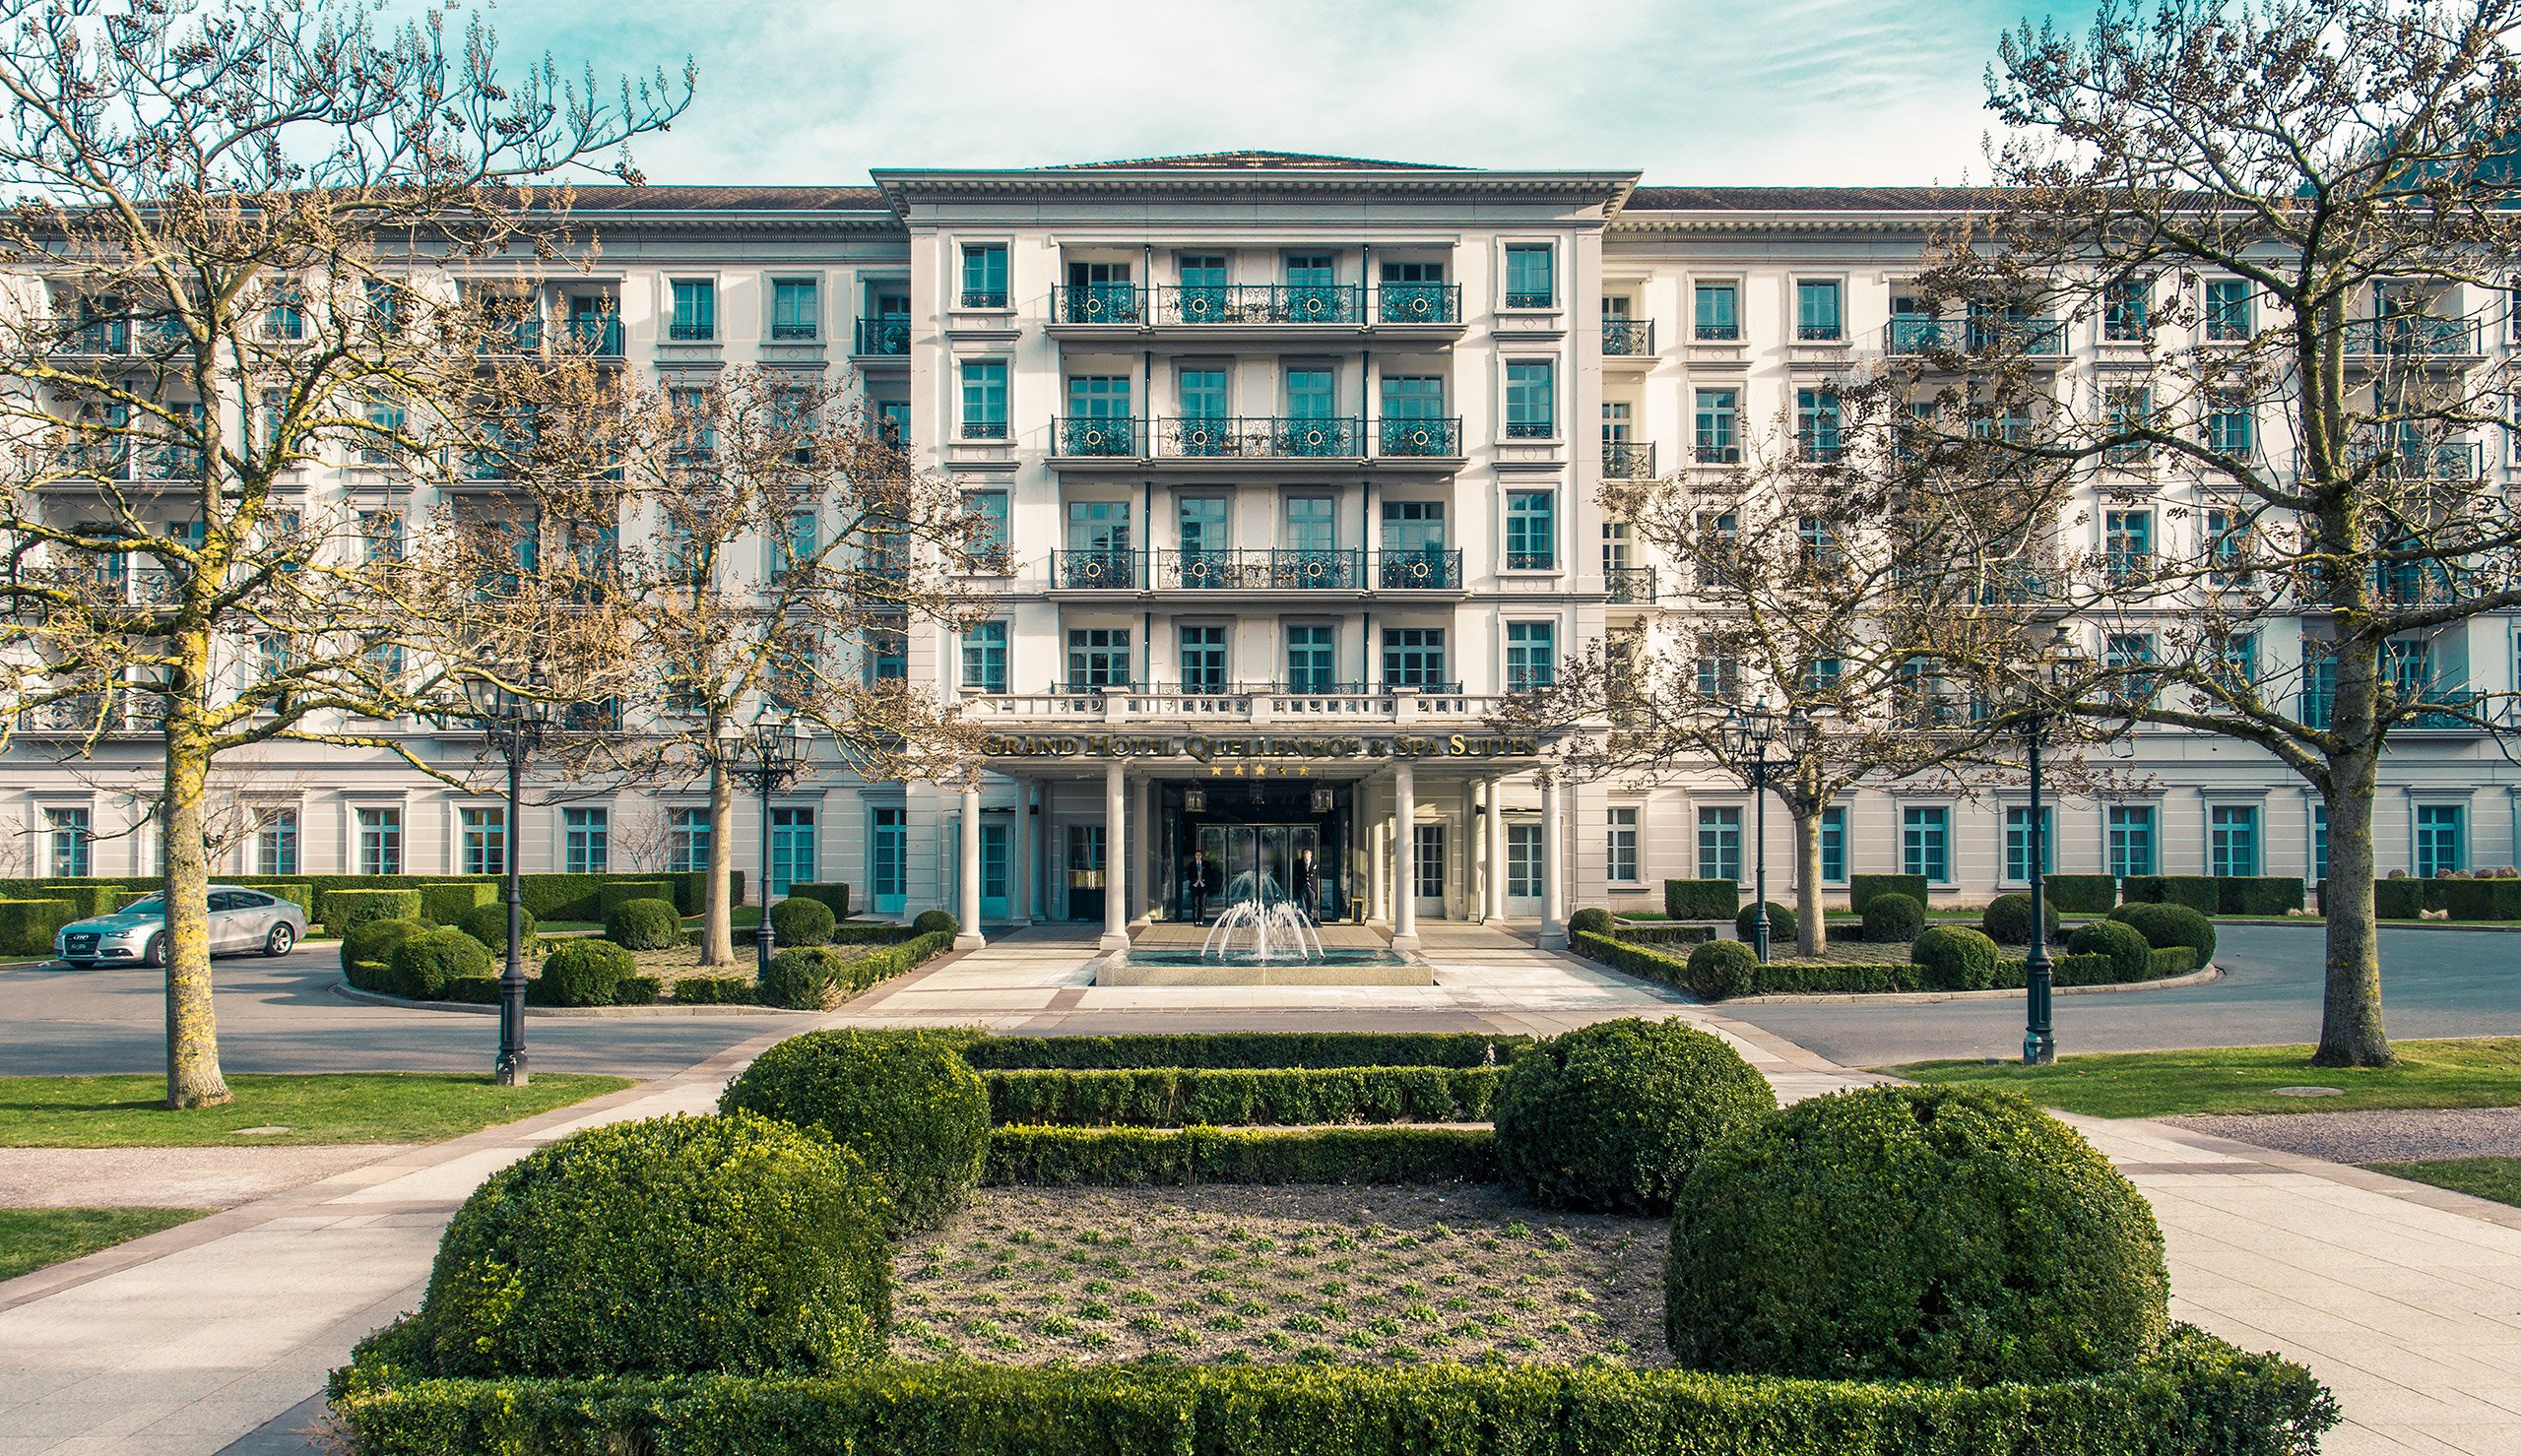 Welcome to Grand Resort Bad Ragaz